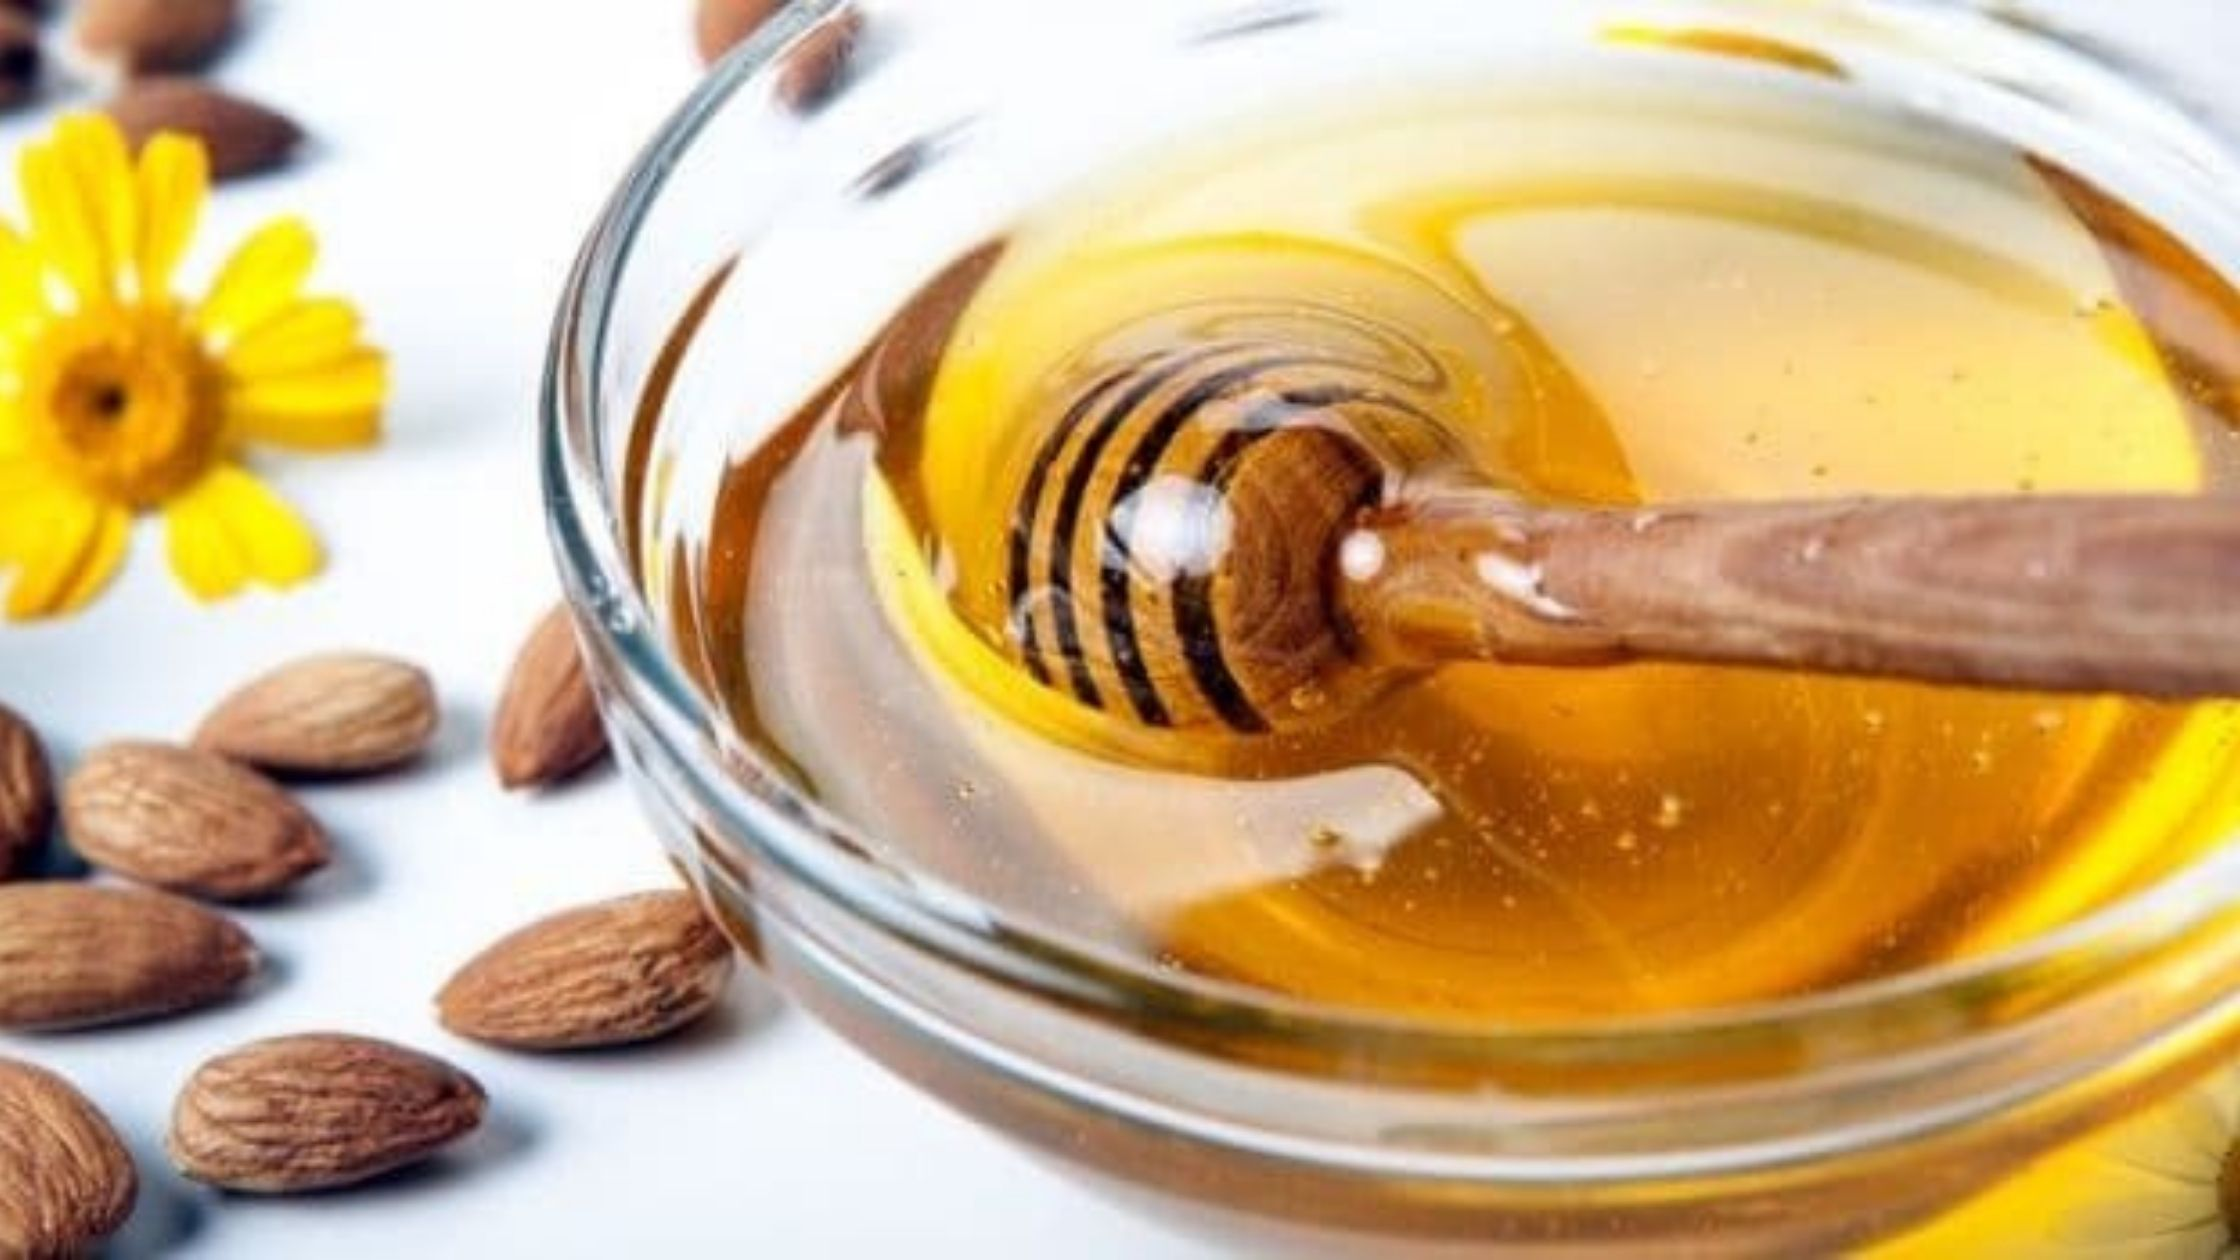 Can honey be on a keto diet?